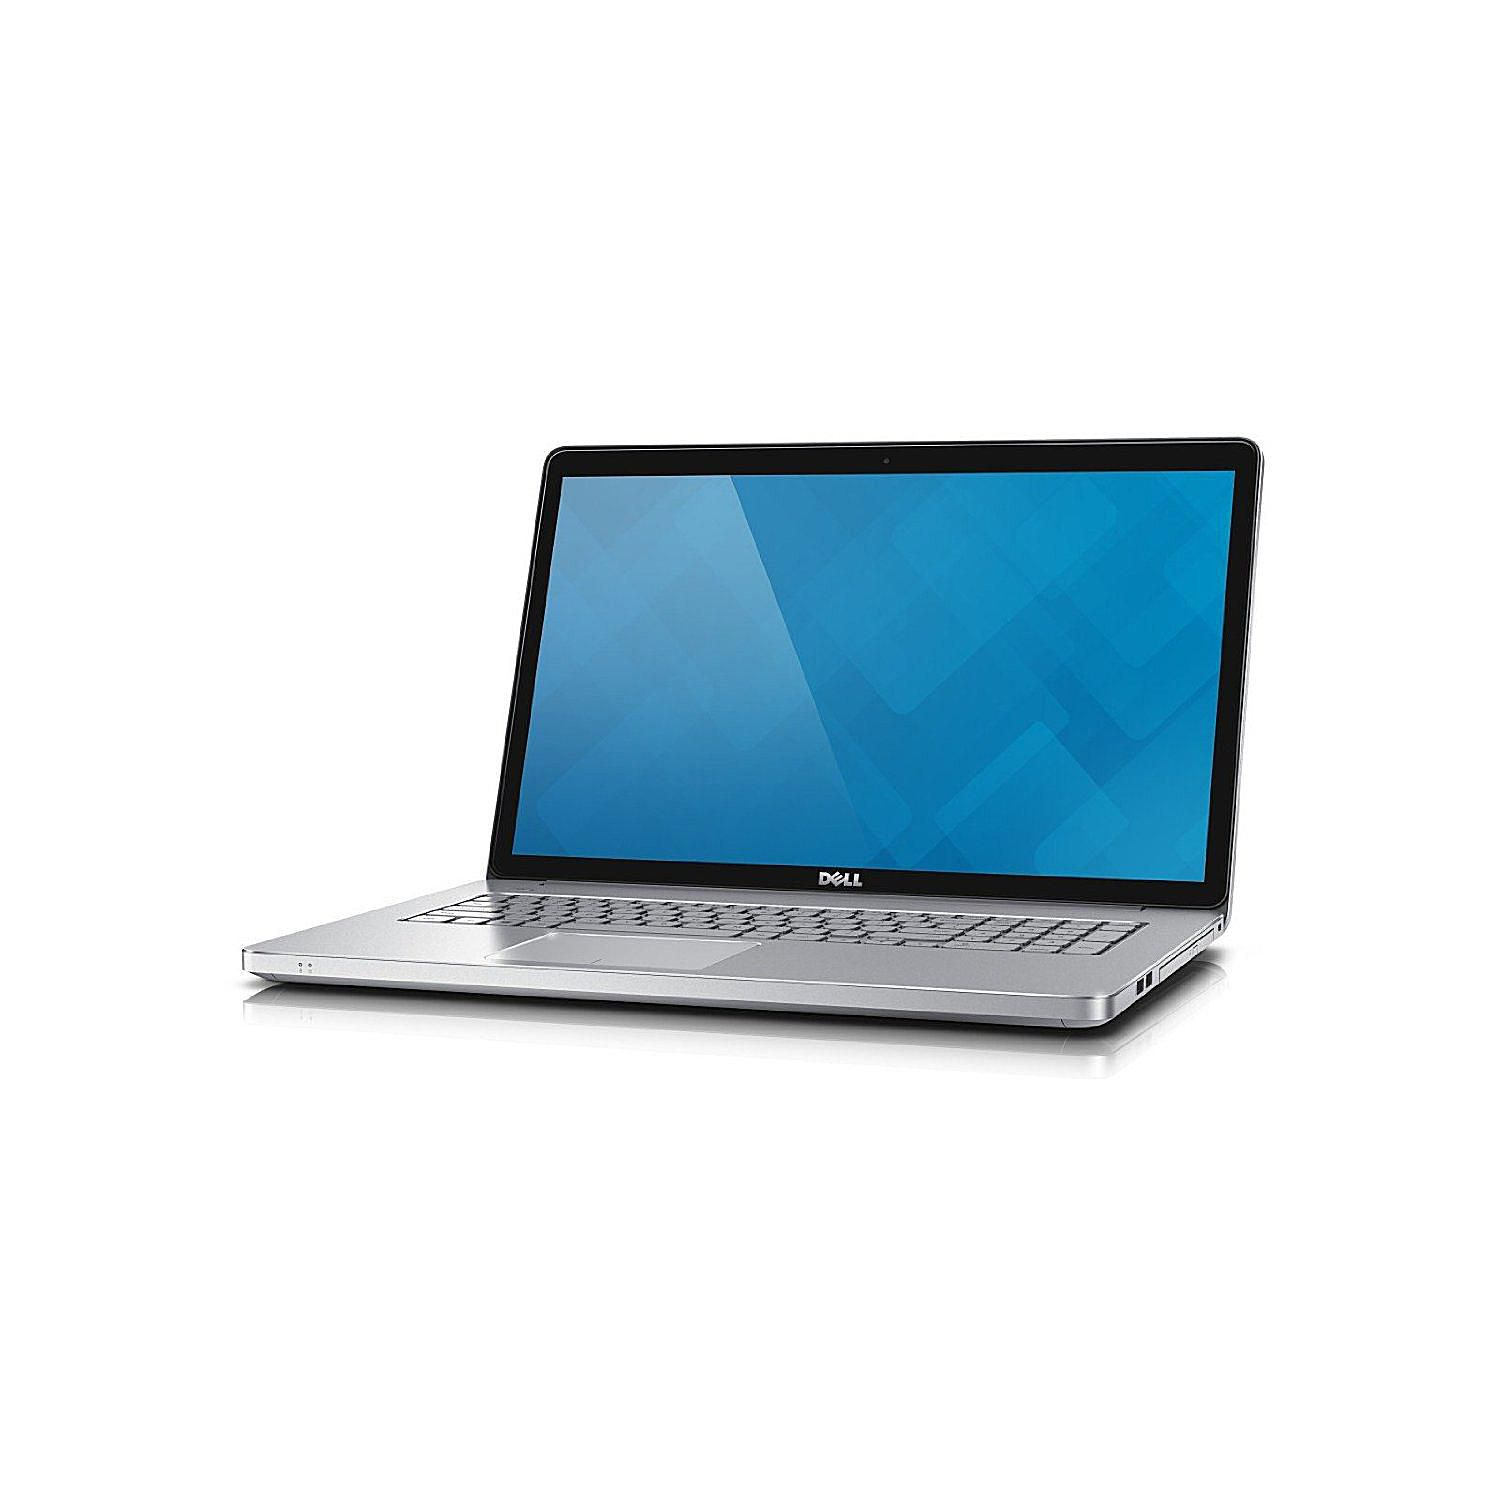 new inspiron 17 7000 review